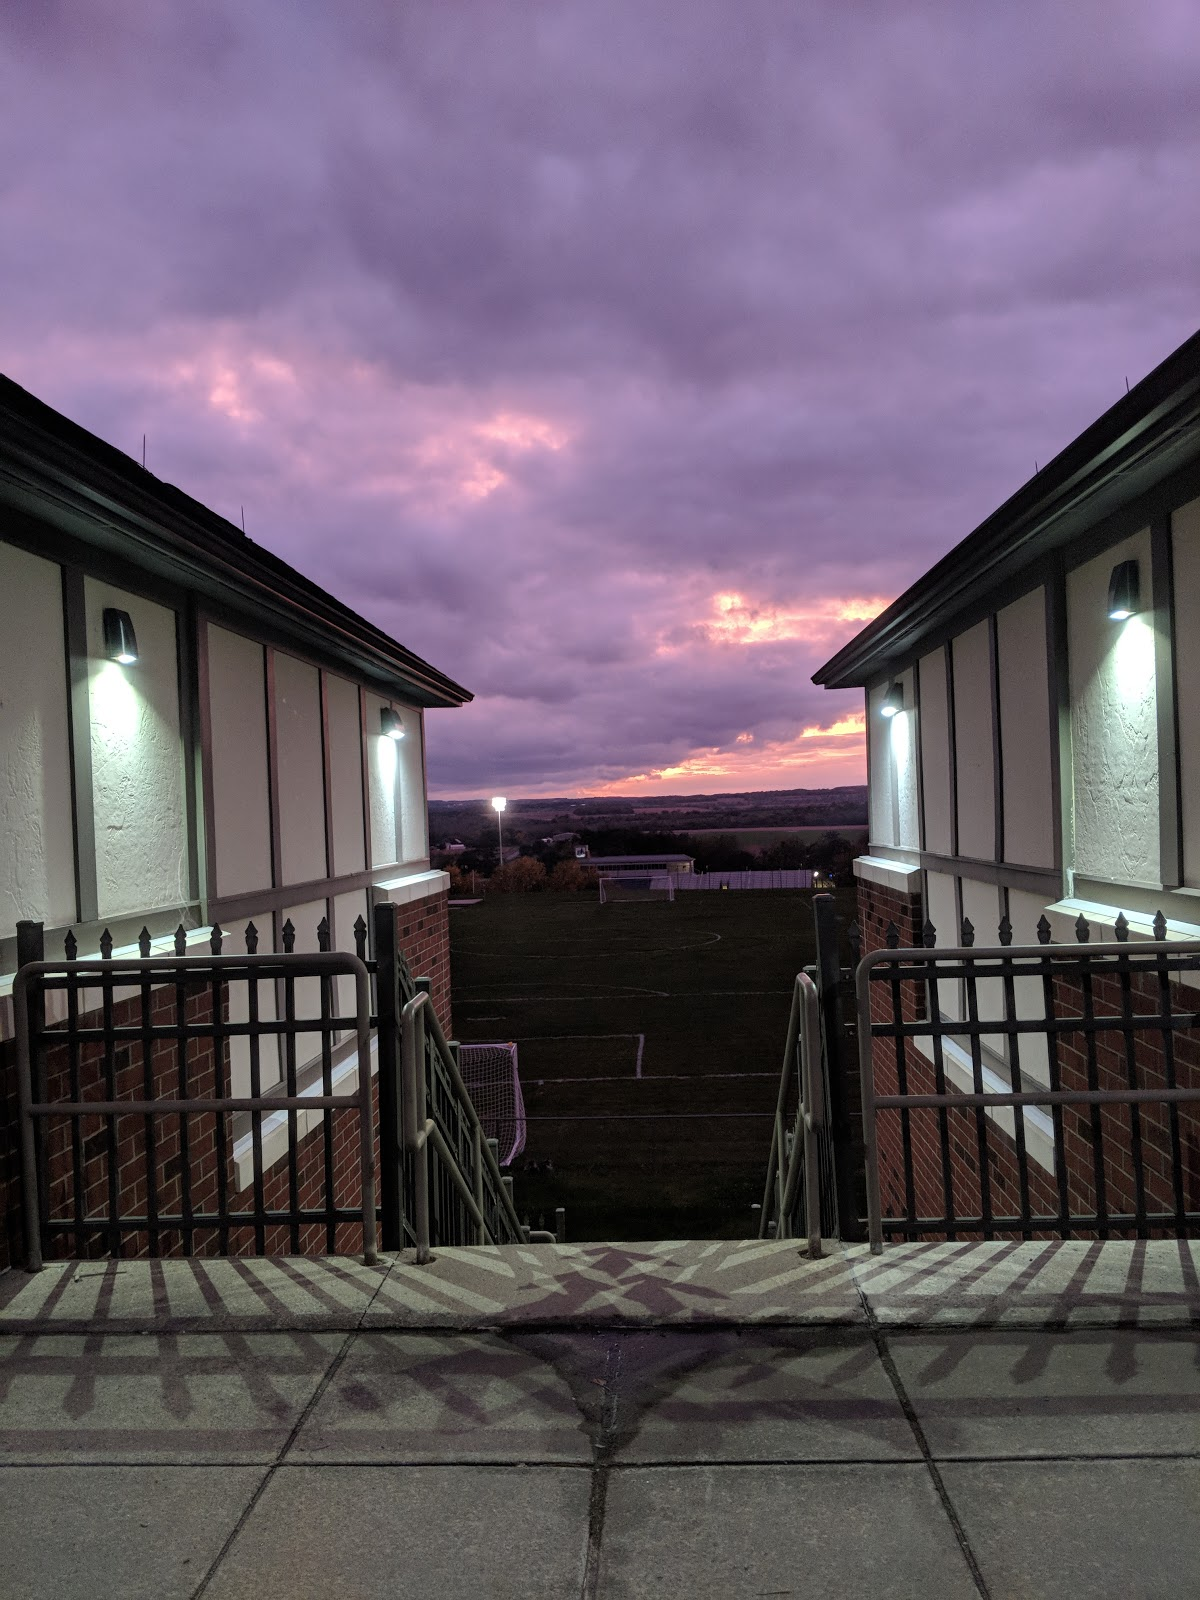 Photograph of sunset as seen through of SUNY Geneseo townhouse residences